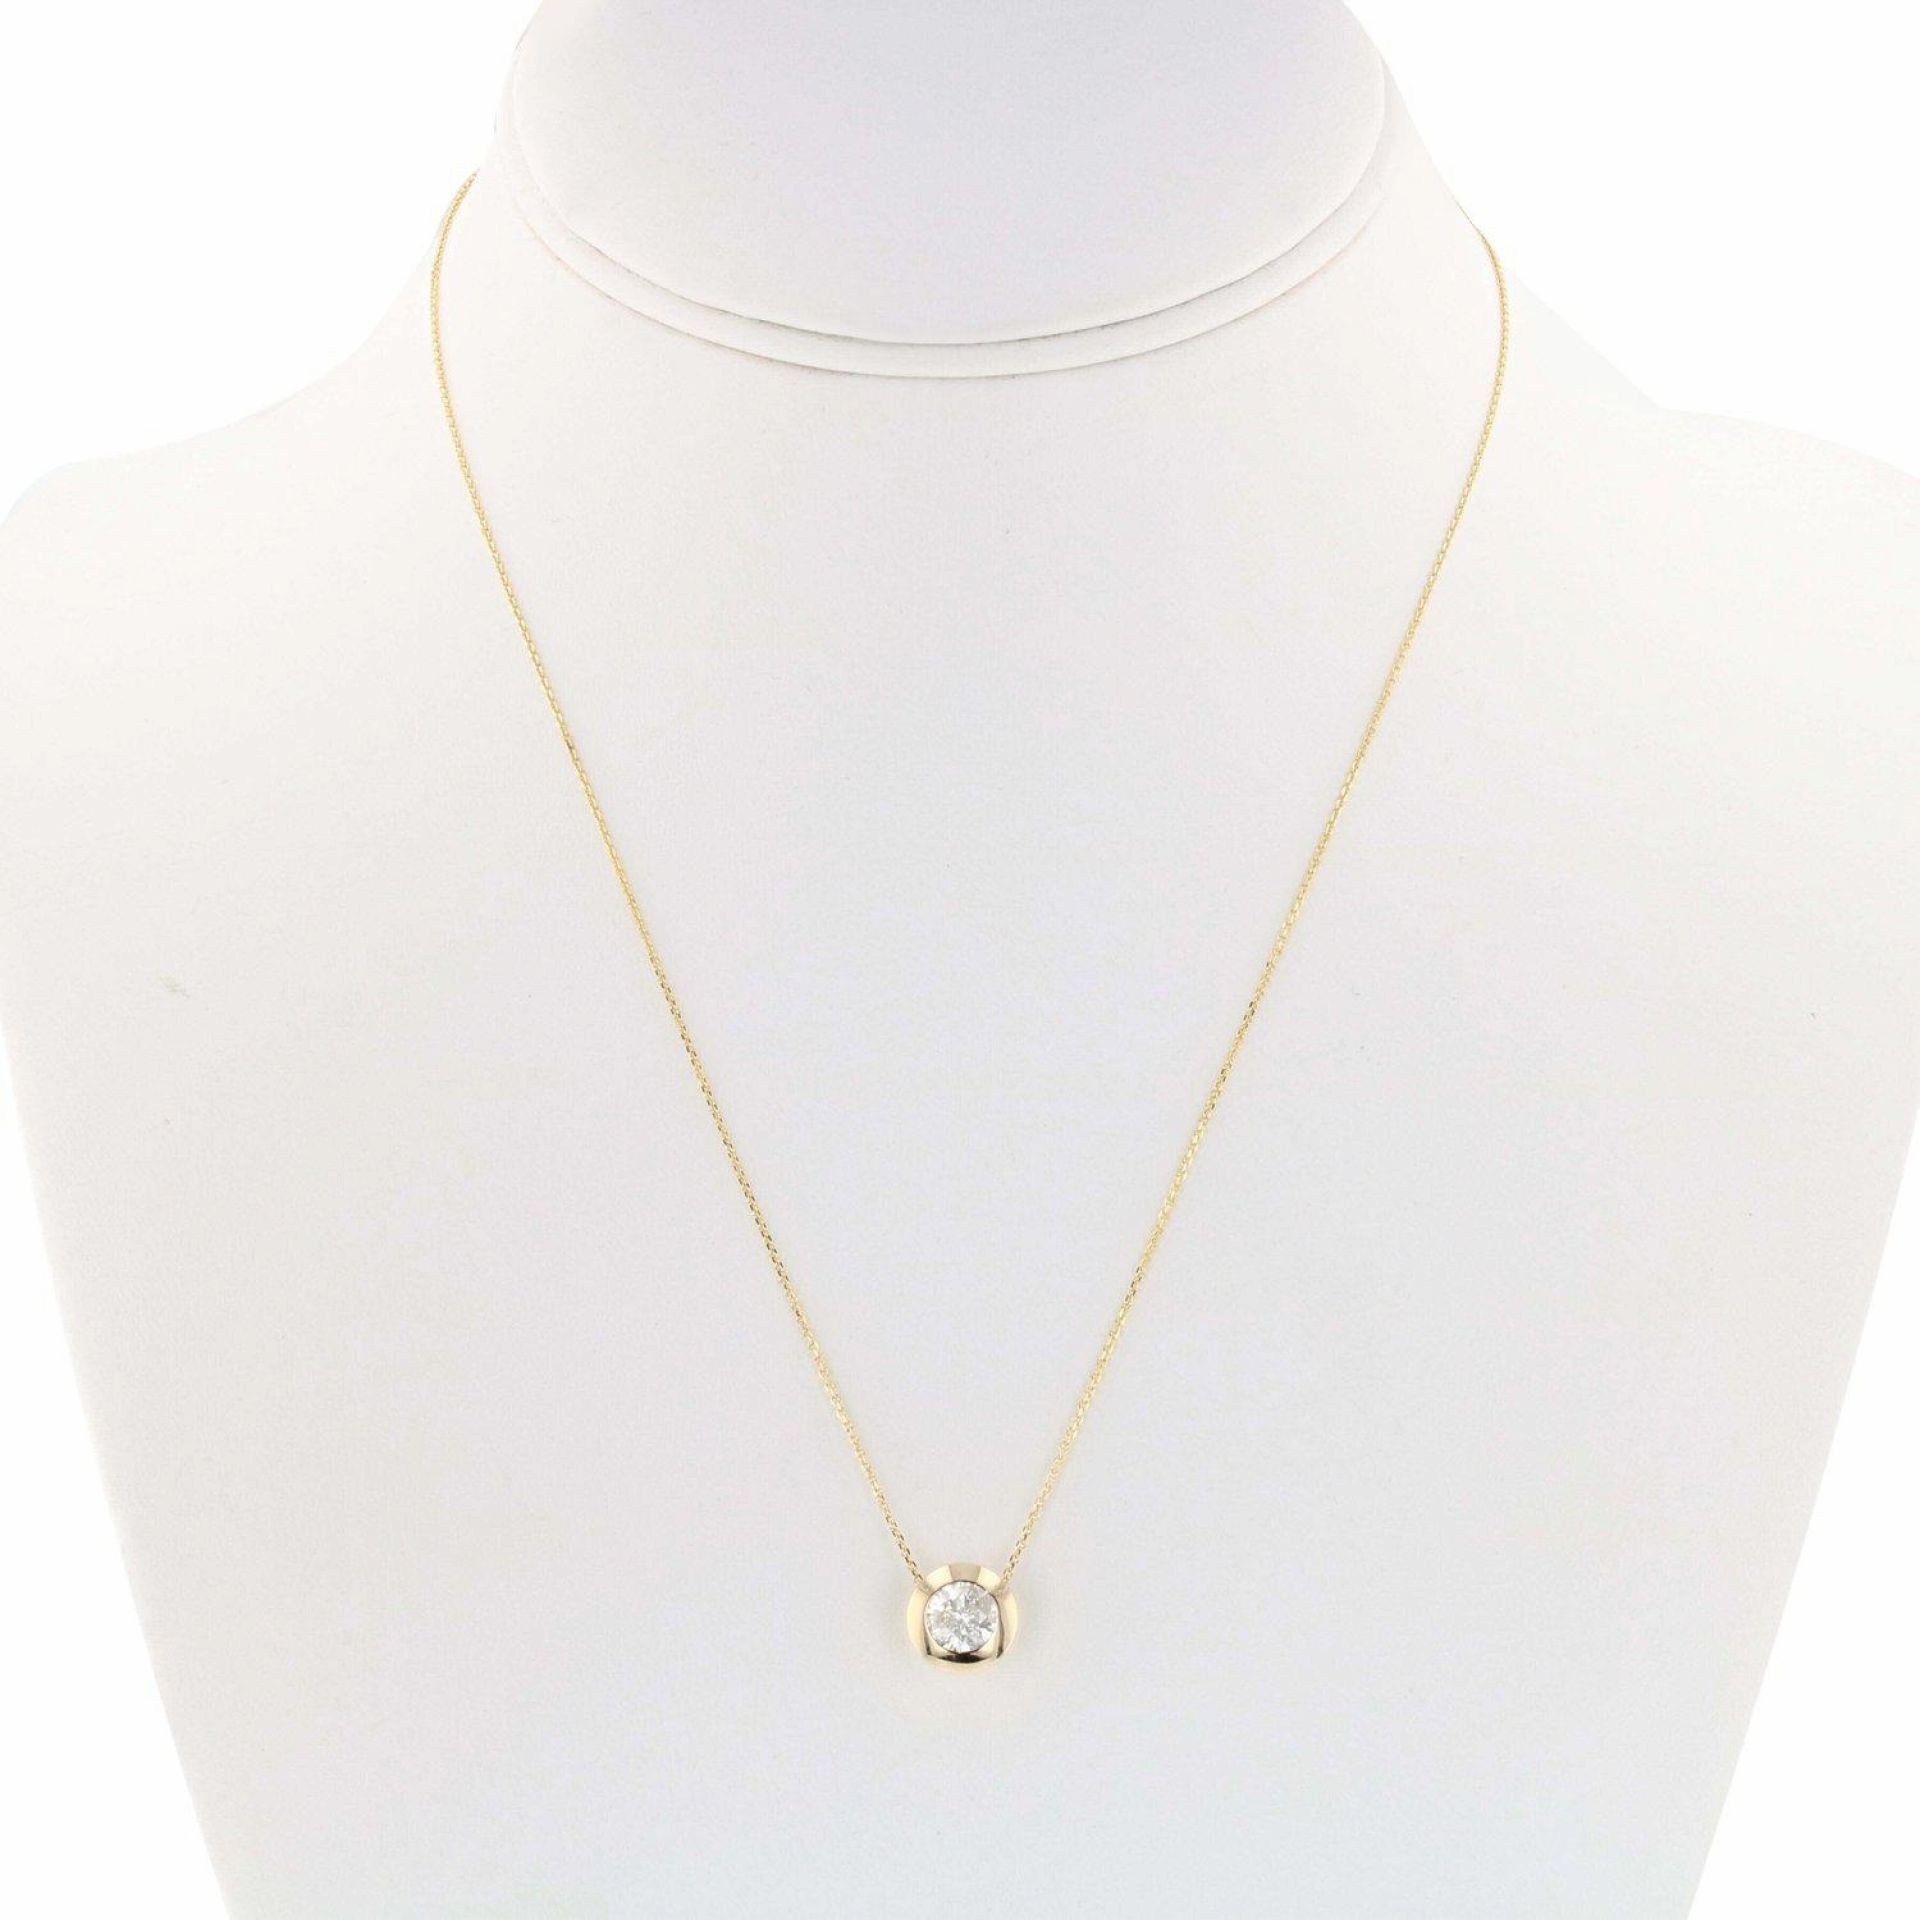 0.88ctw Diamond 14KT Yellow Gold Solitaire Pendant/Necklace